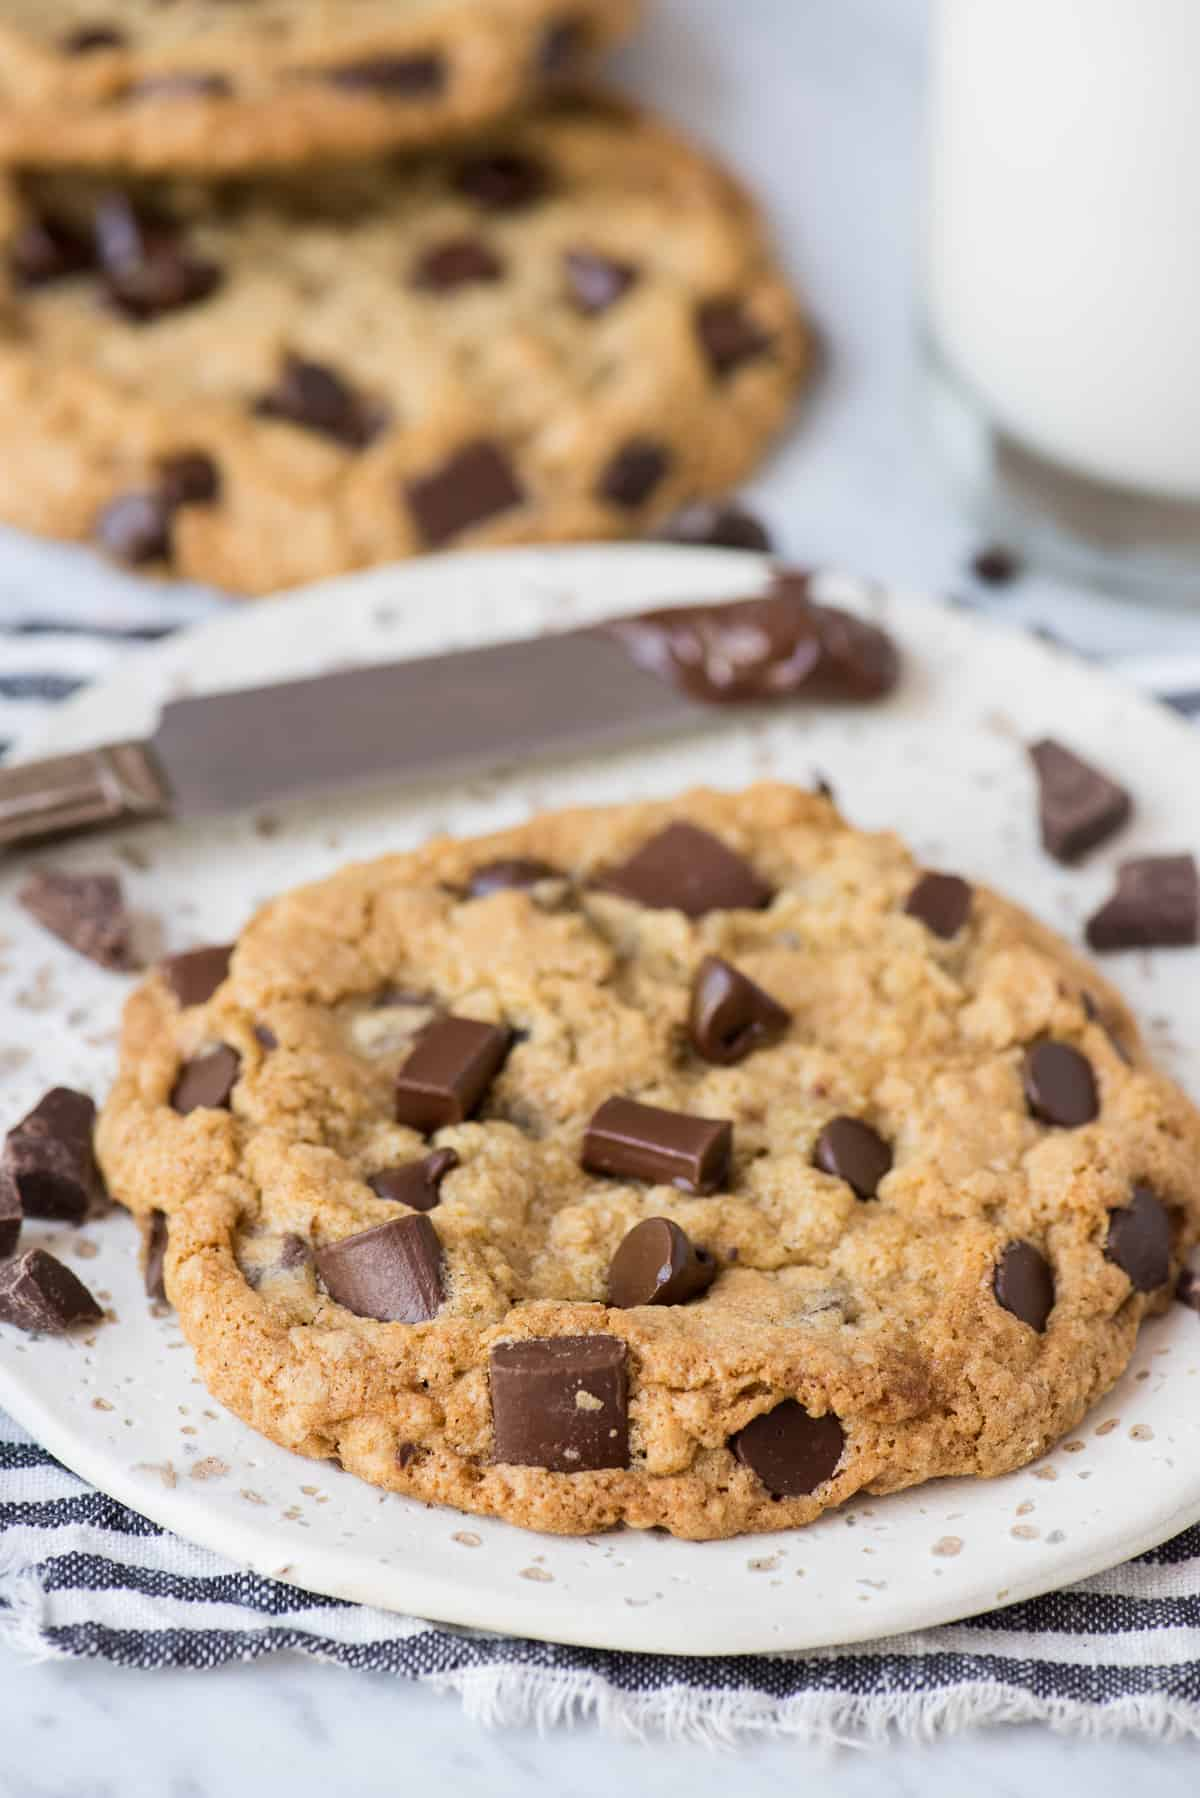 oatmeal chocolate chip cookie on round white plate